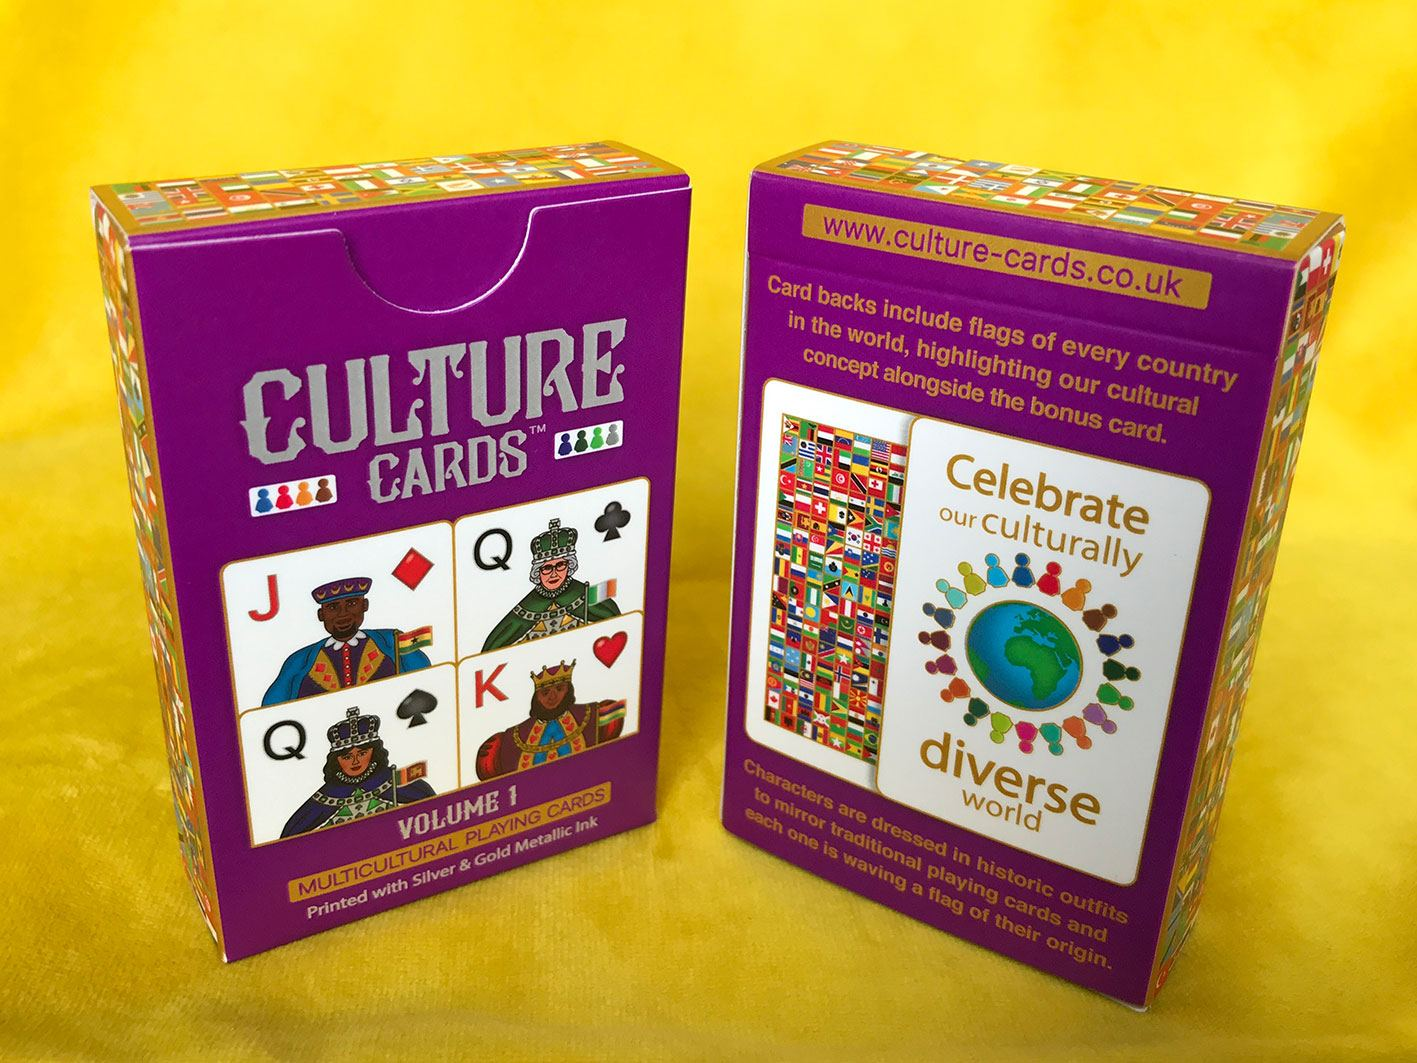 Culture Cards Deck - Multicultural Playing Cards Celebrating Diversity